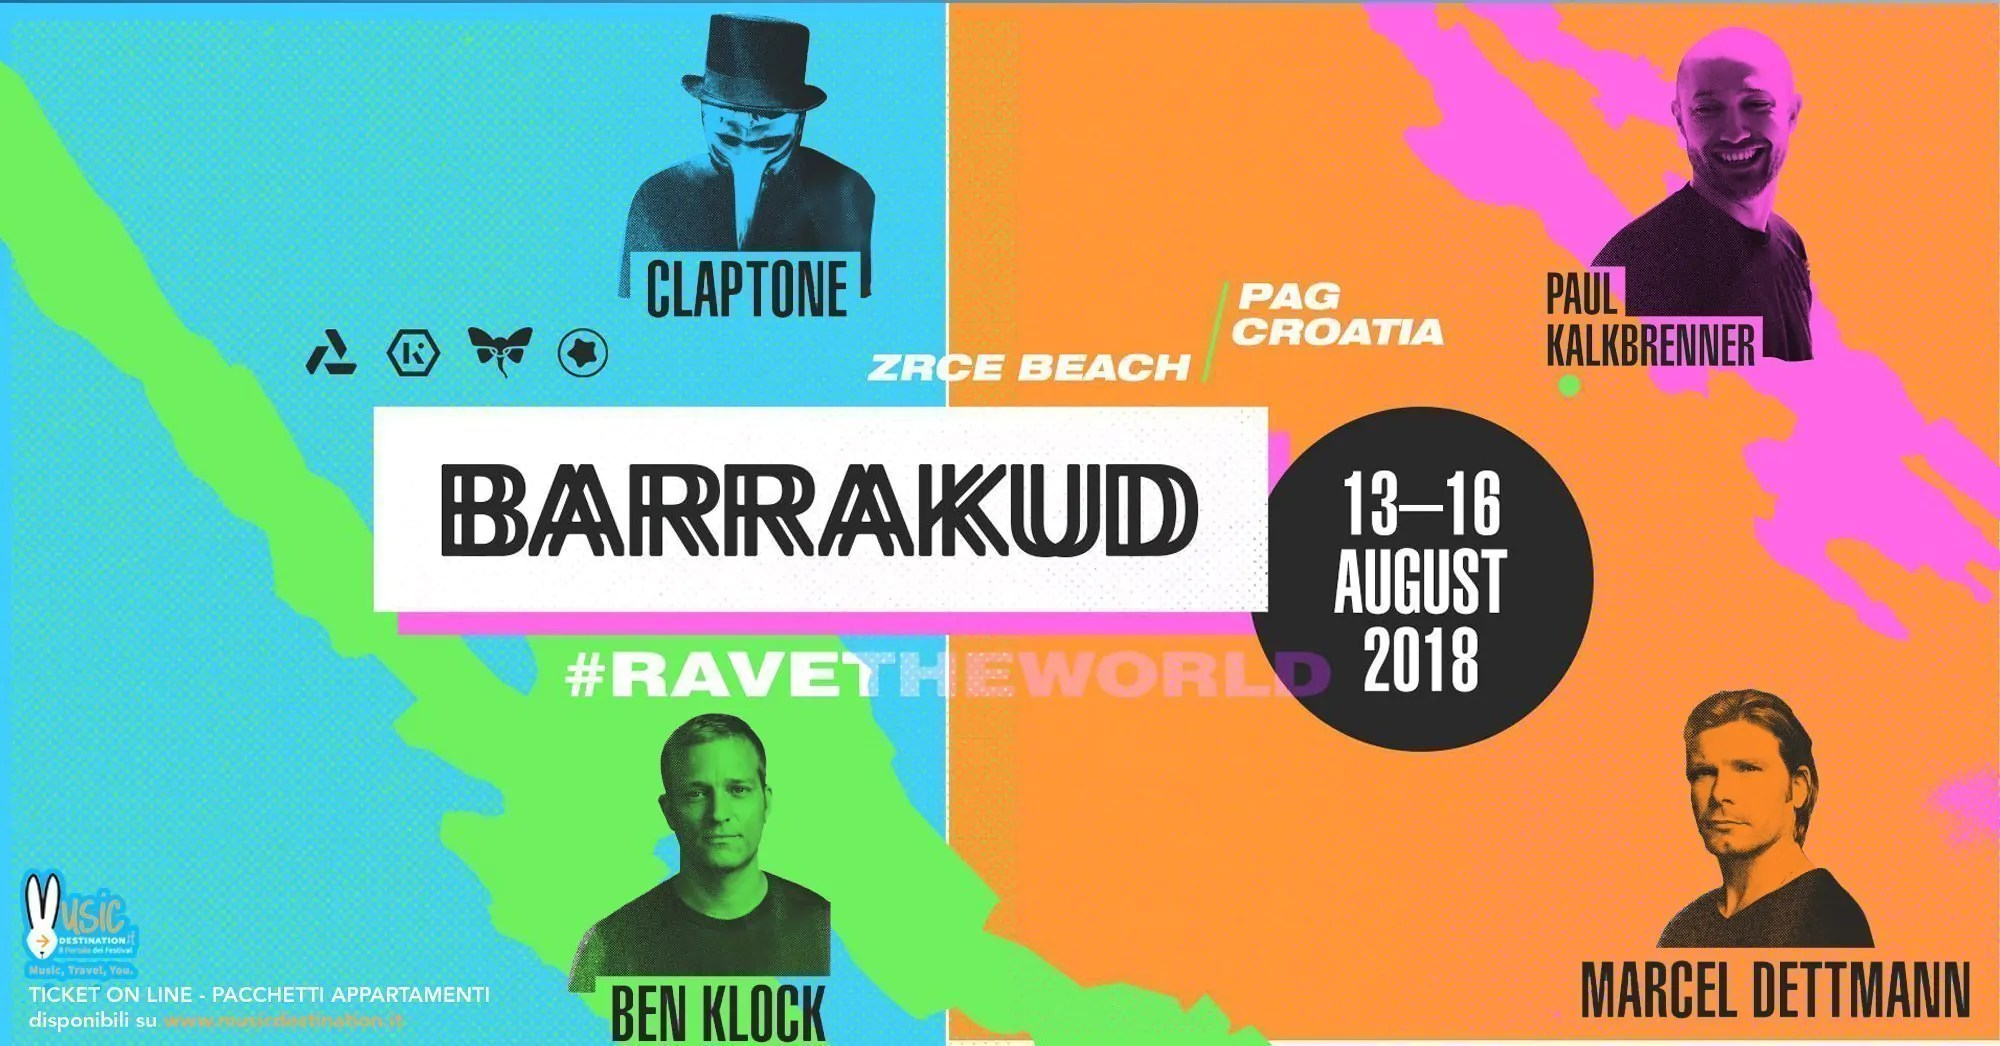 BARRAKUD Festival 2018, 13 – 16 Agosto – Pag Croazia – Ticket – Appartamento